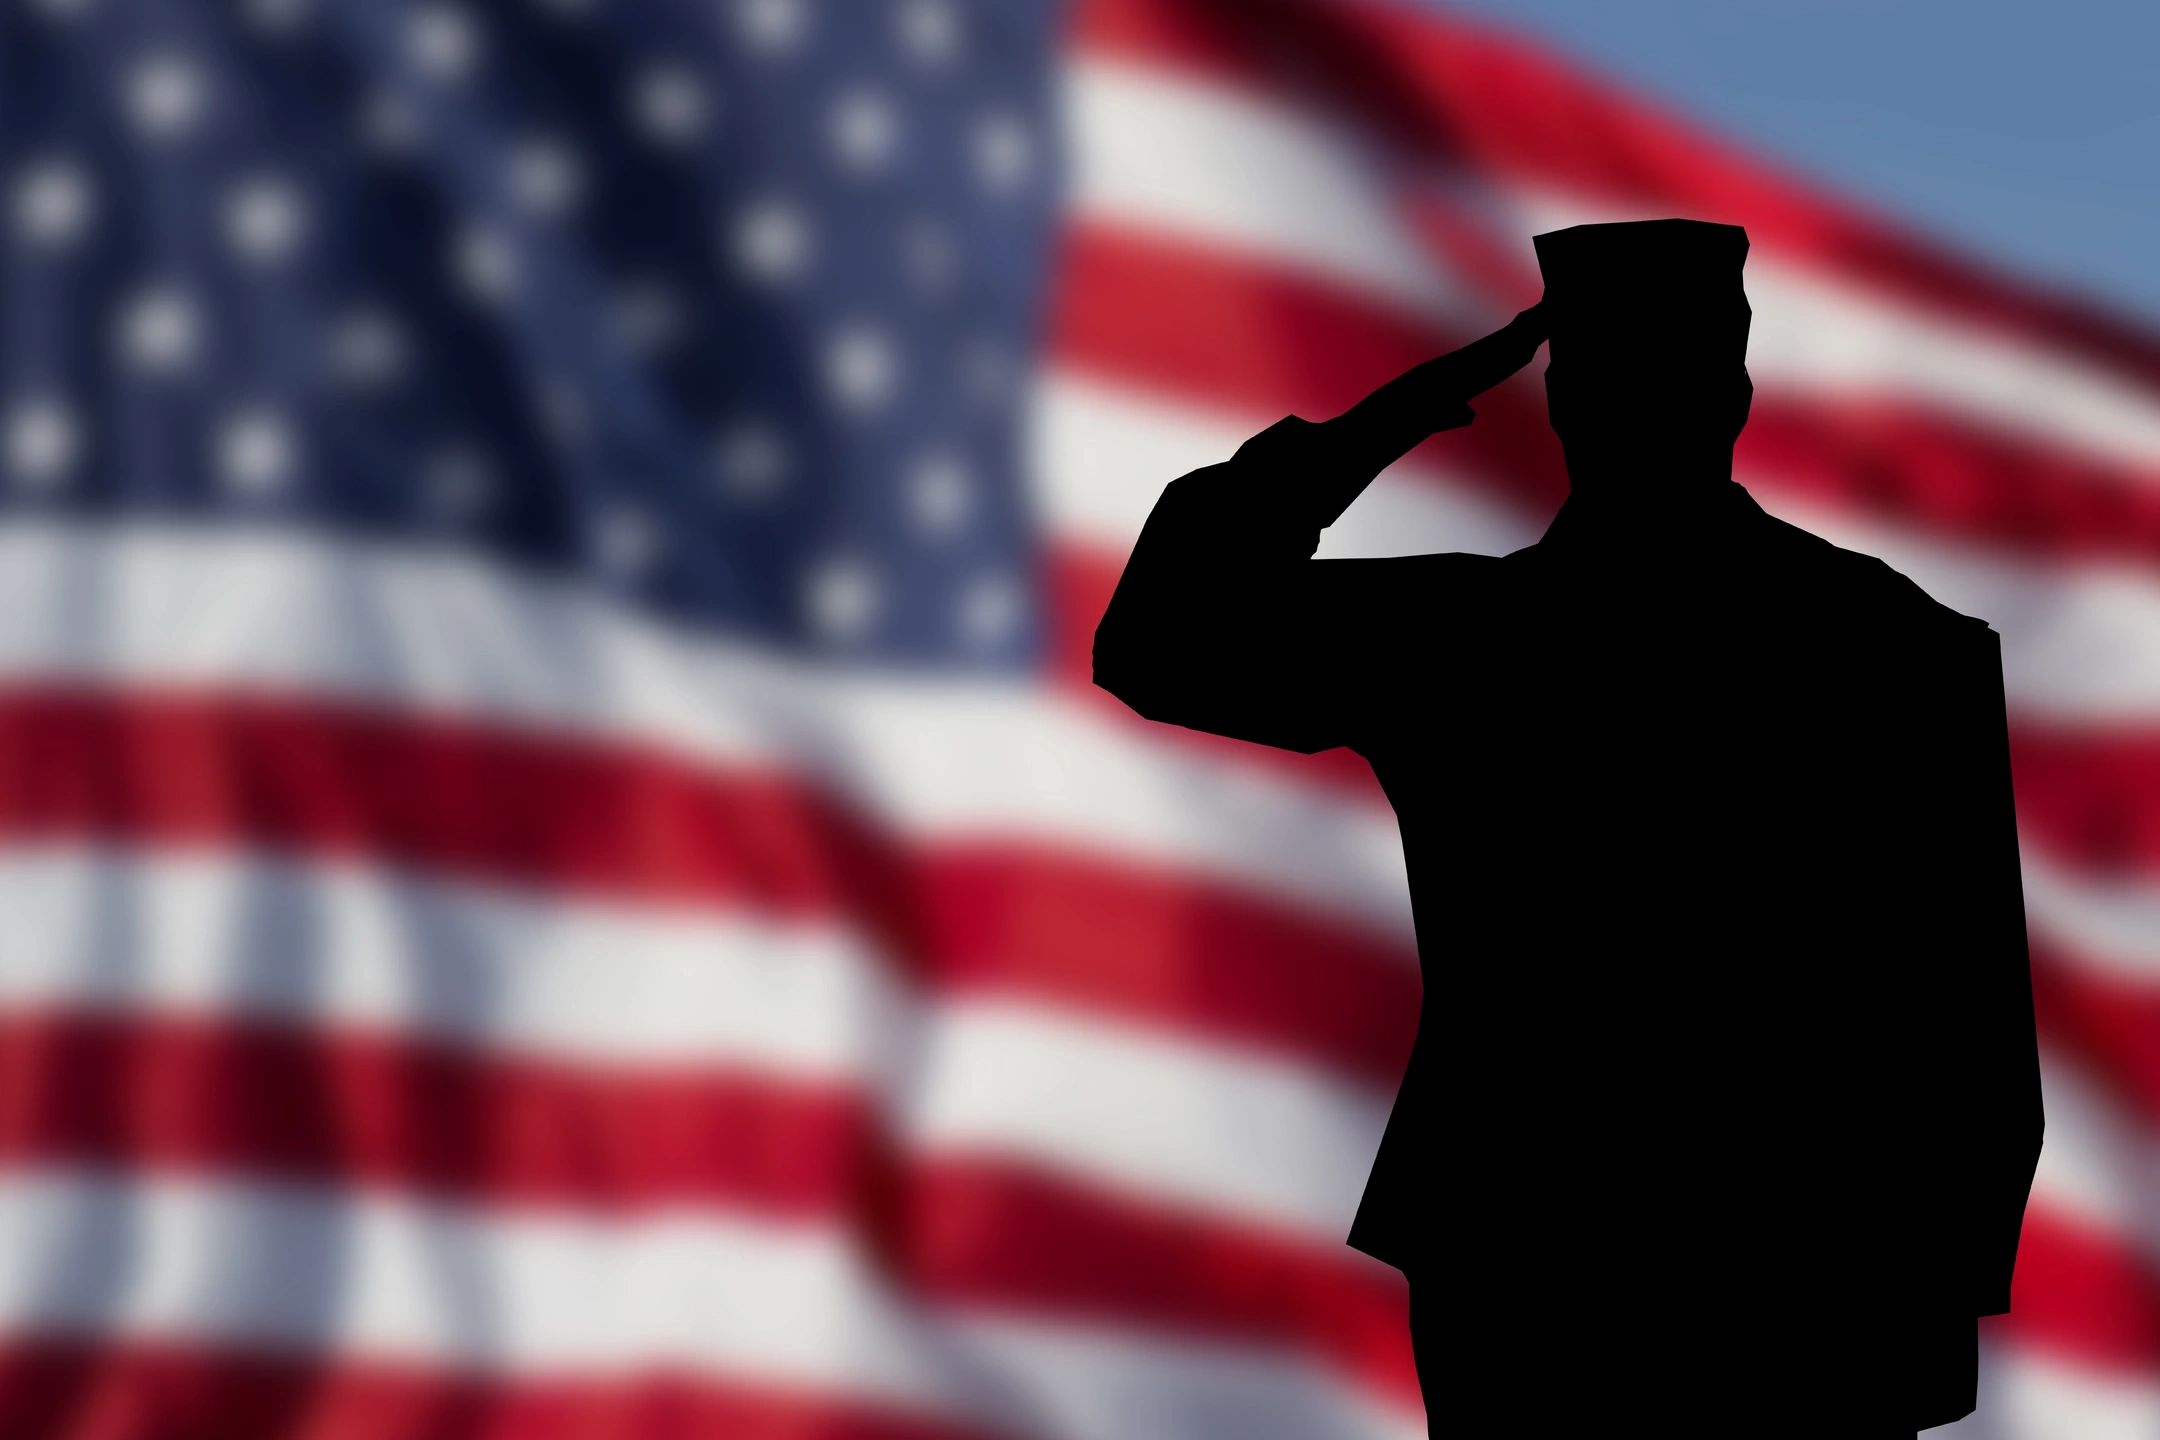 American Flag with Military Service Person